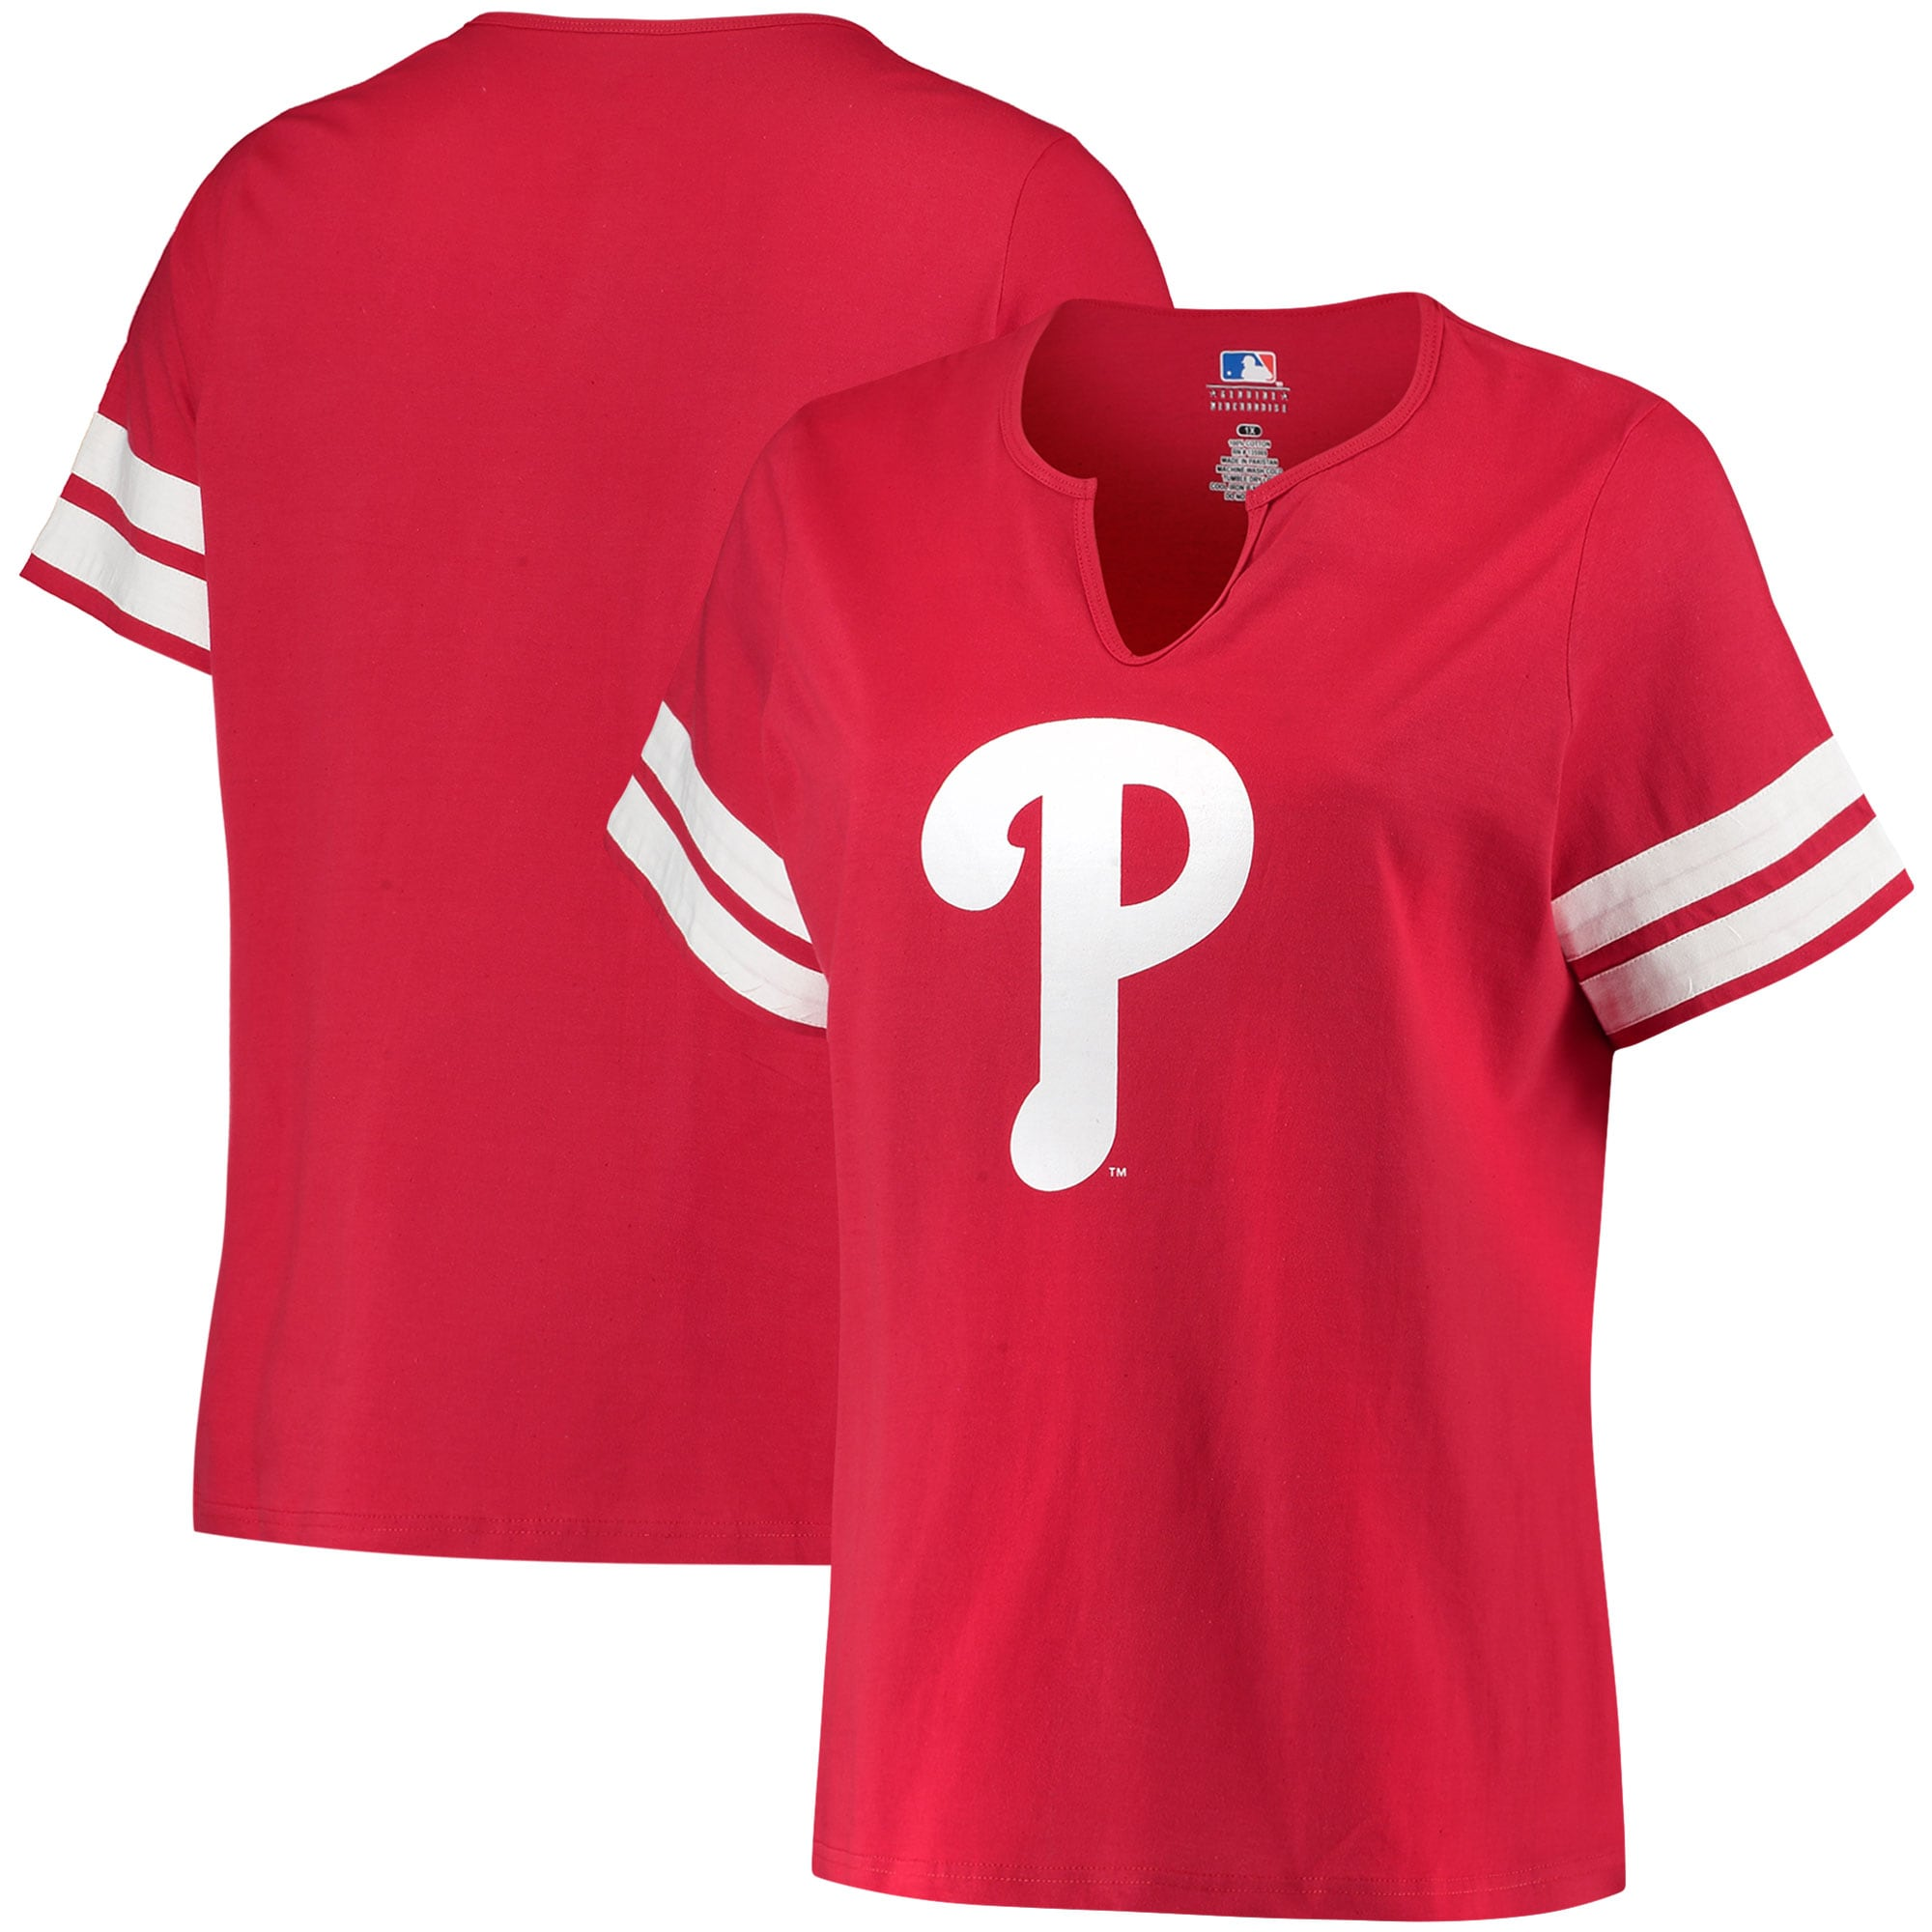 Philadelphia Phillies Women's Plus Size V-Notch T-Shirt - Red/White